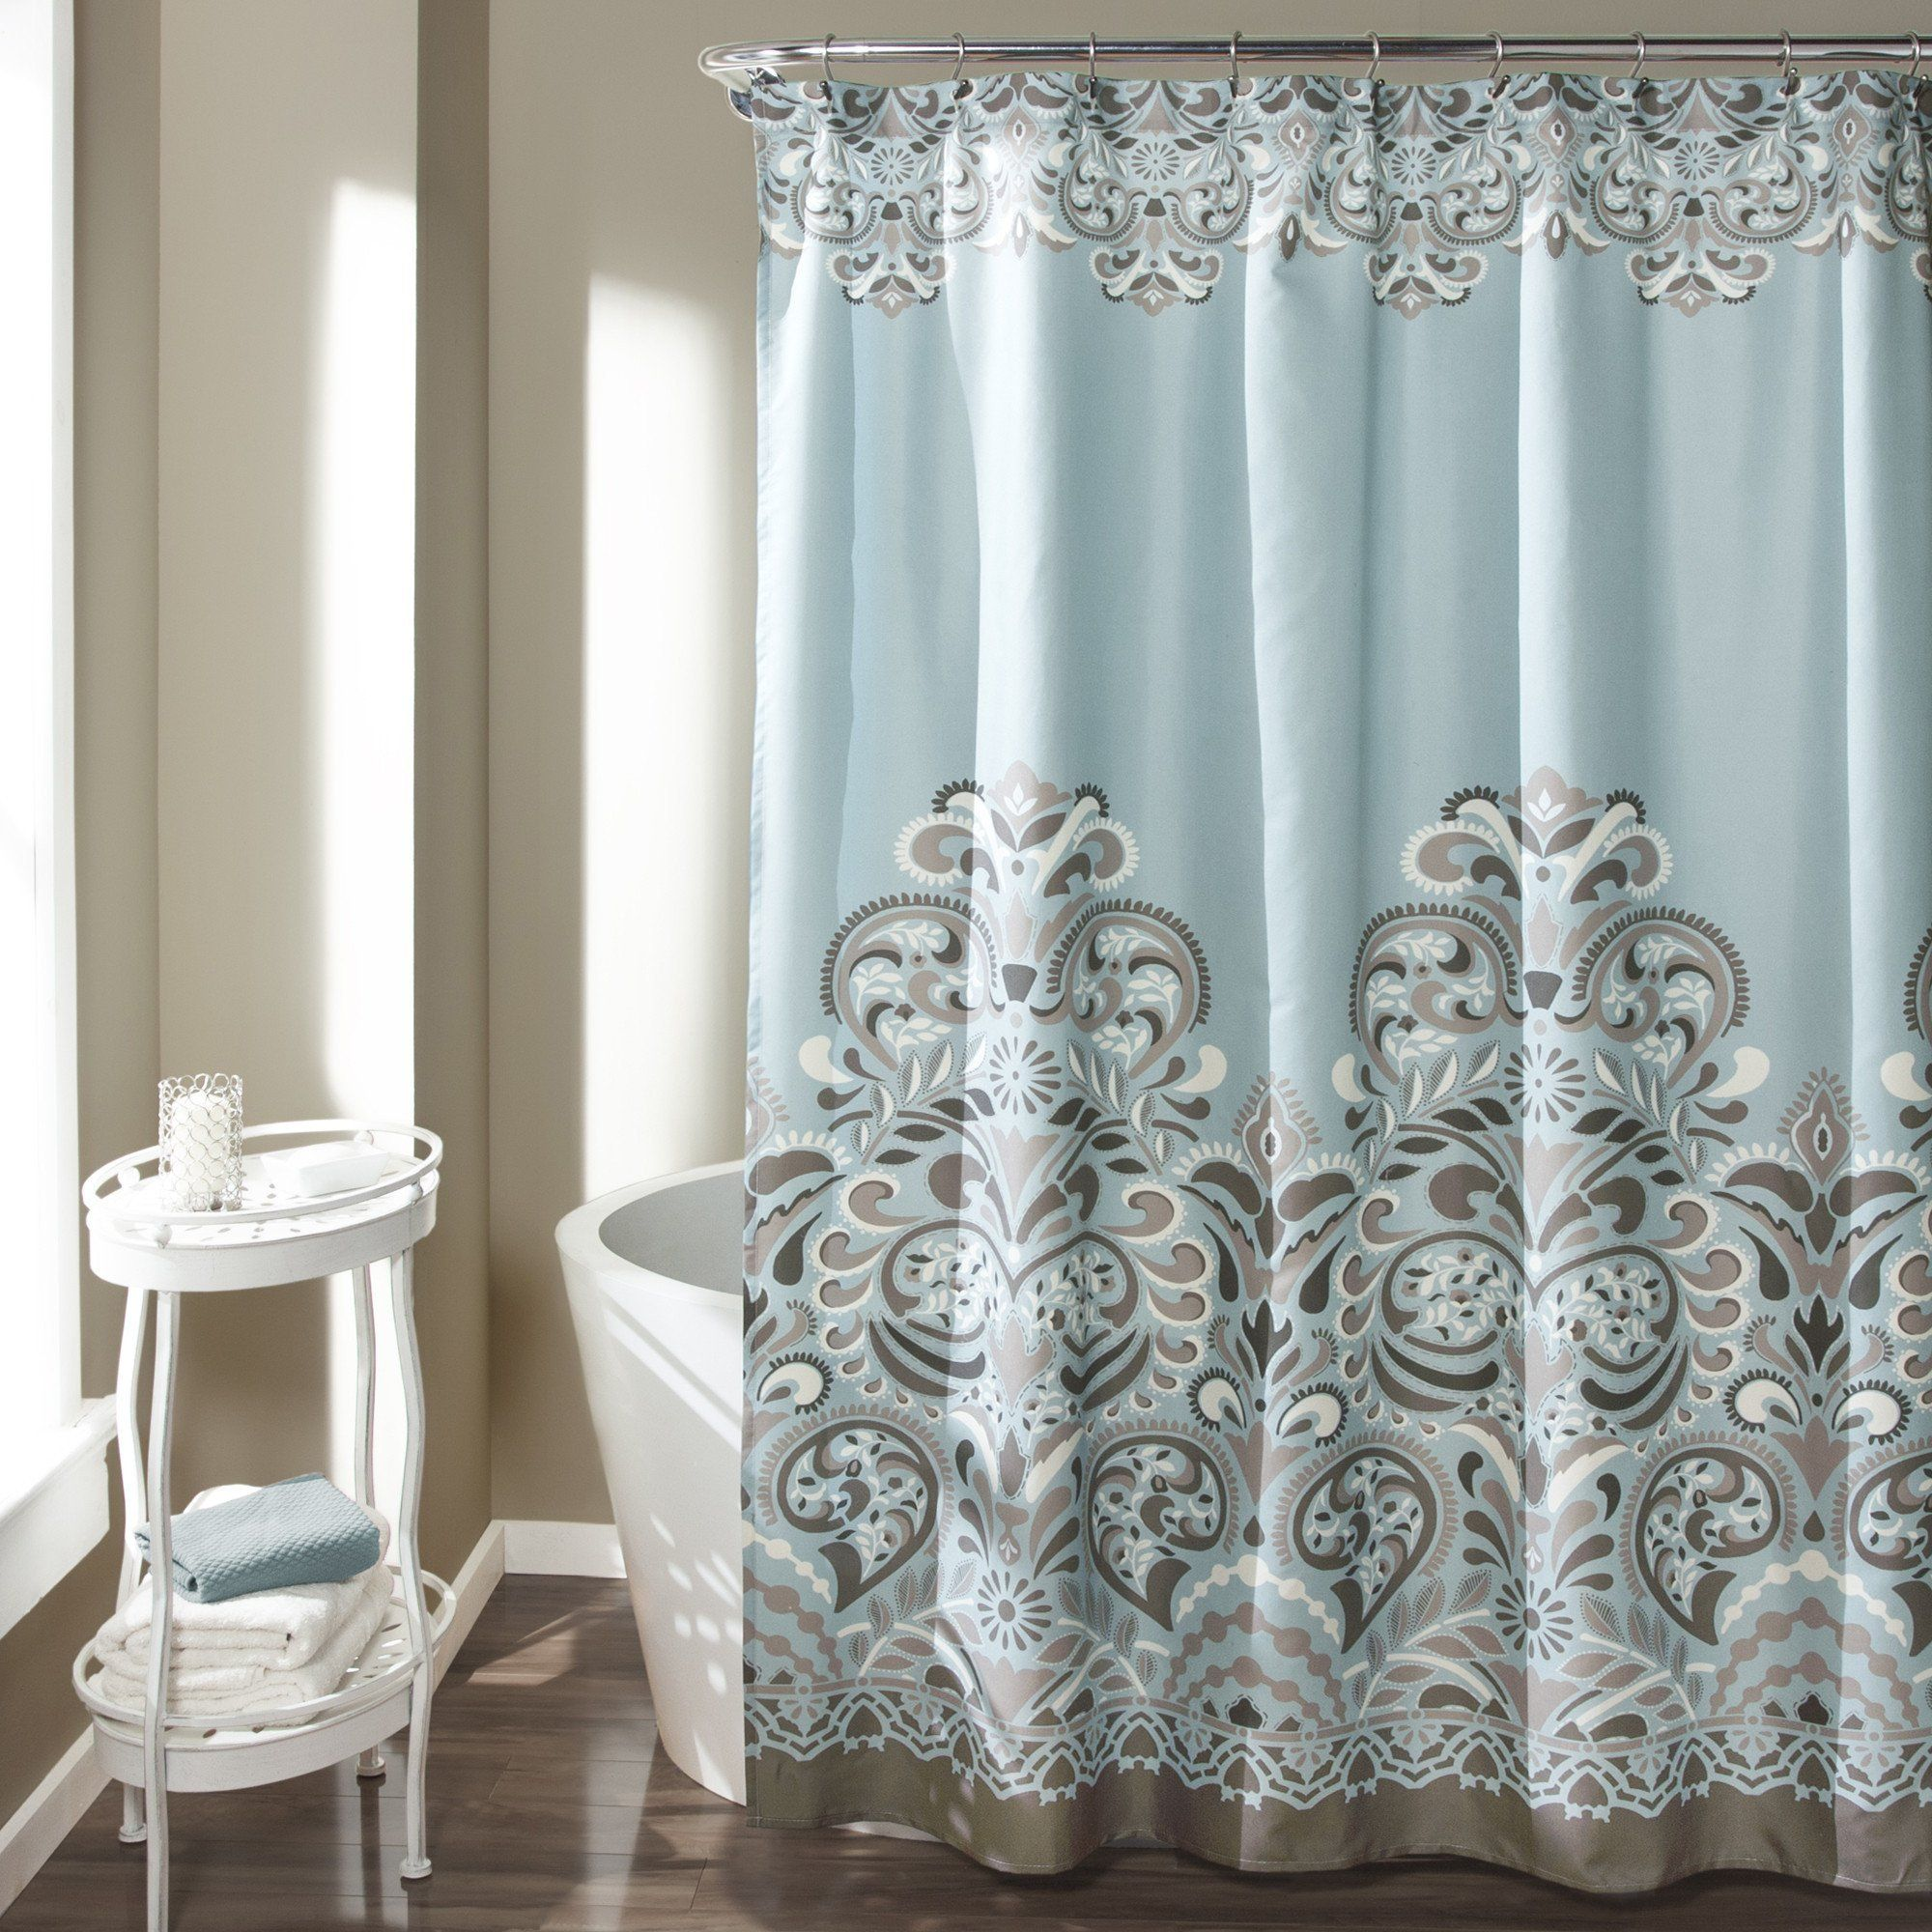 2938fc85feba0c68928e6285bf87f46c - Better Homes And Gardens Tranquil Floral Curtains